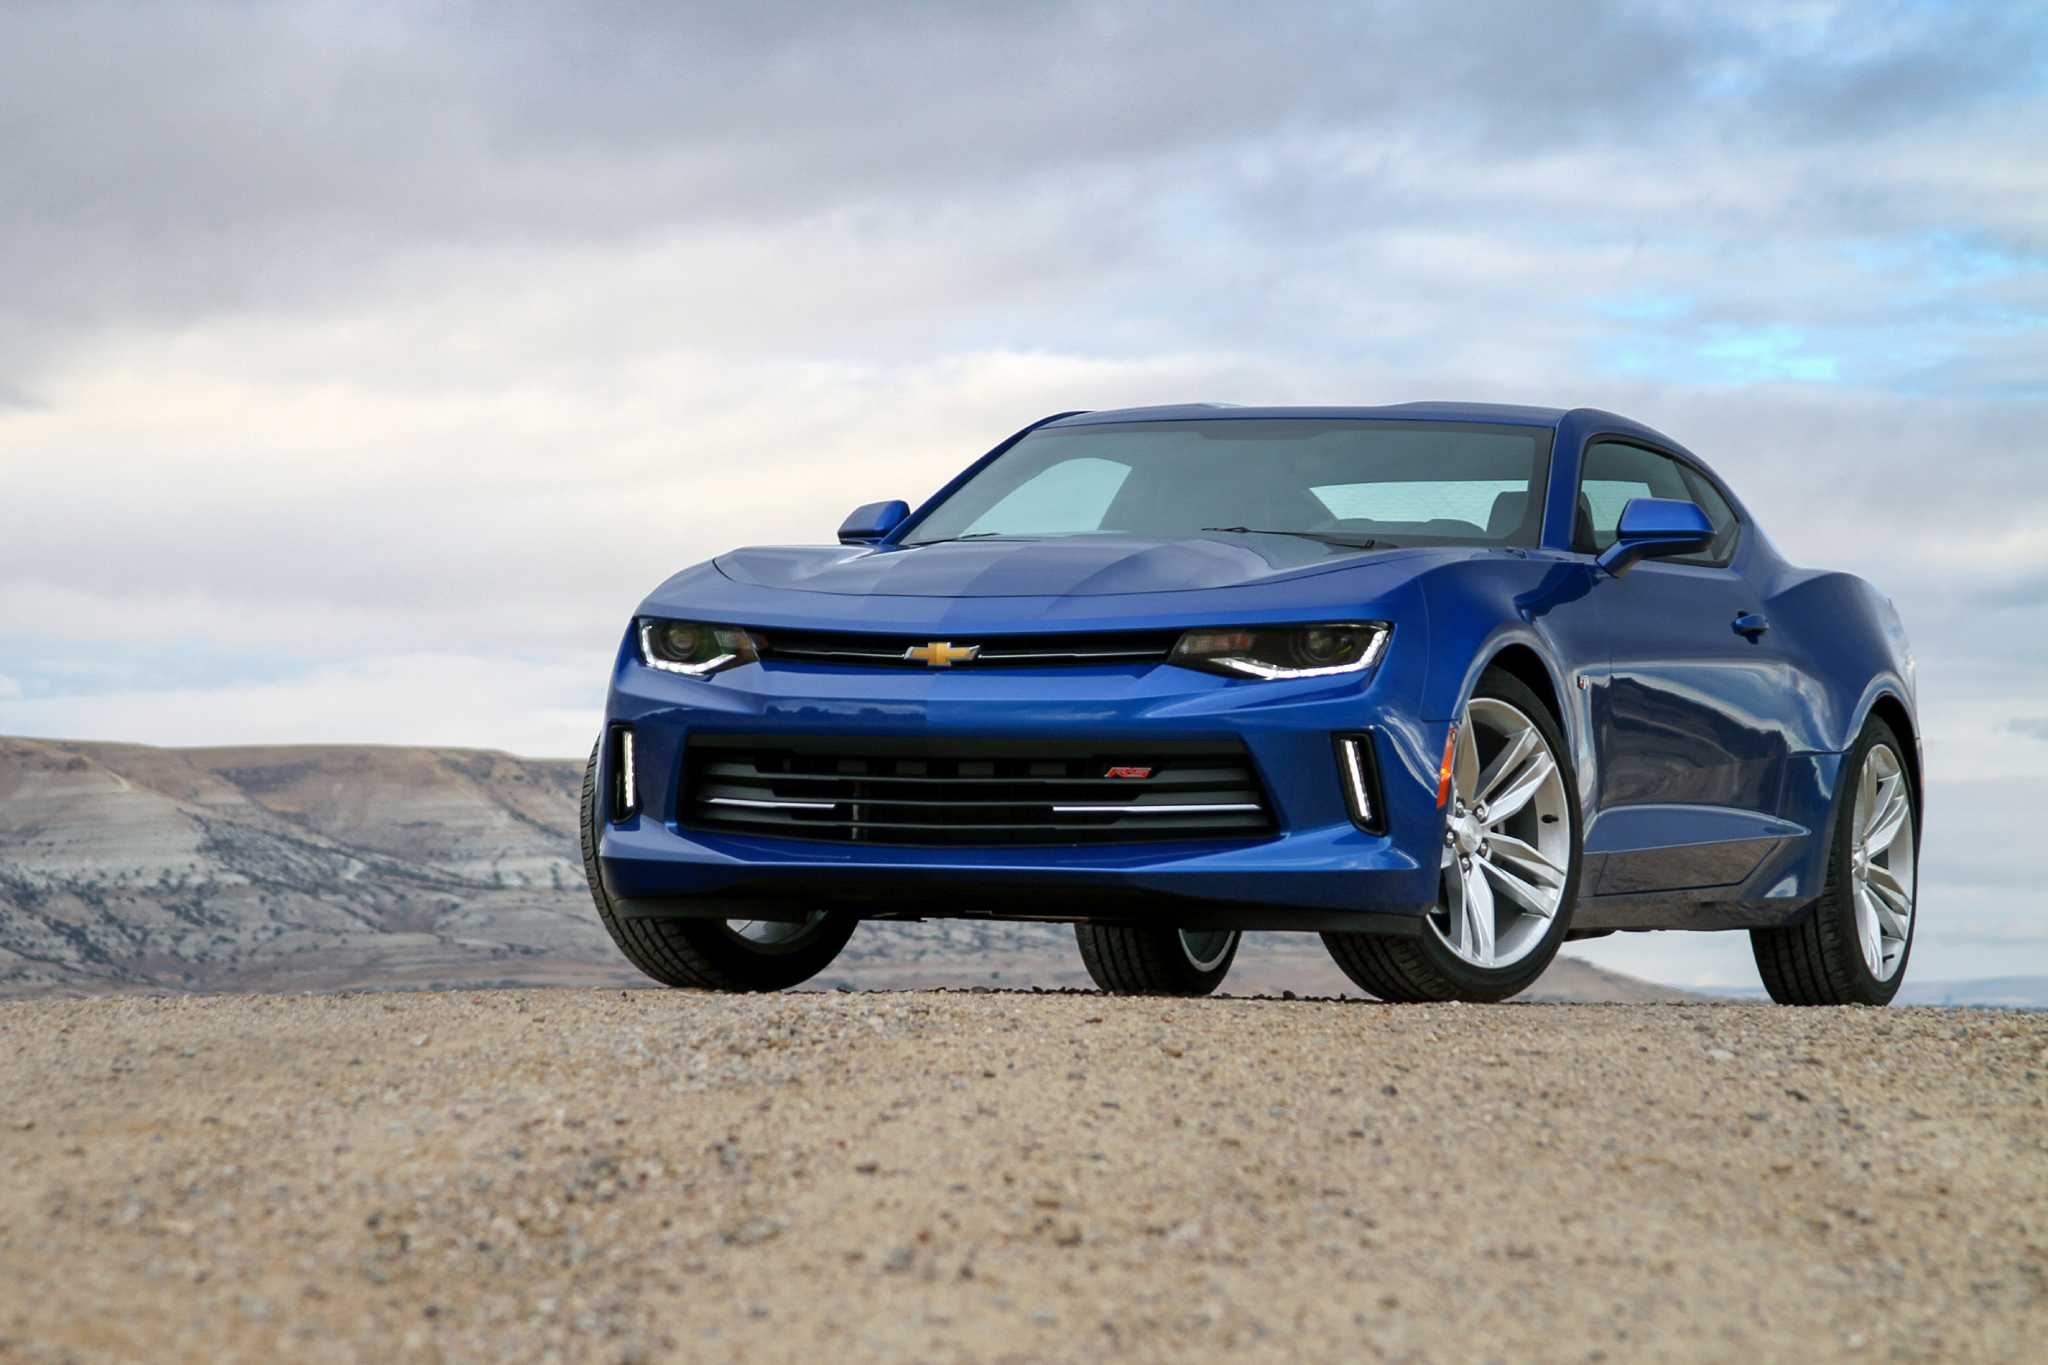 Chevy gets it right with lighter, nimbler 6th-gen 2016 Camaro